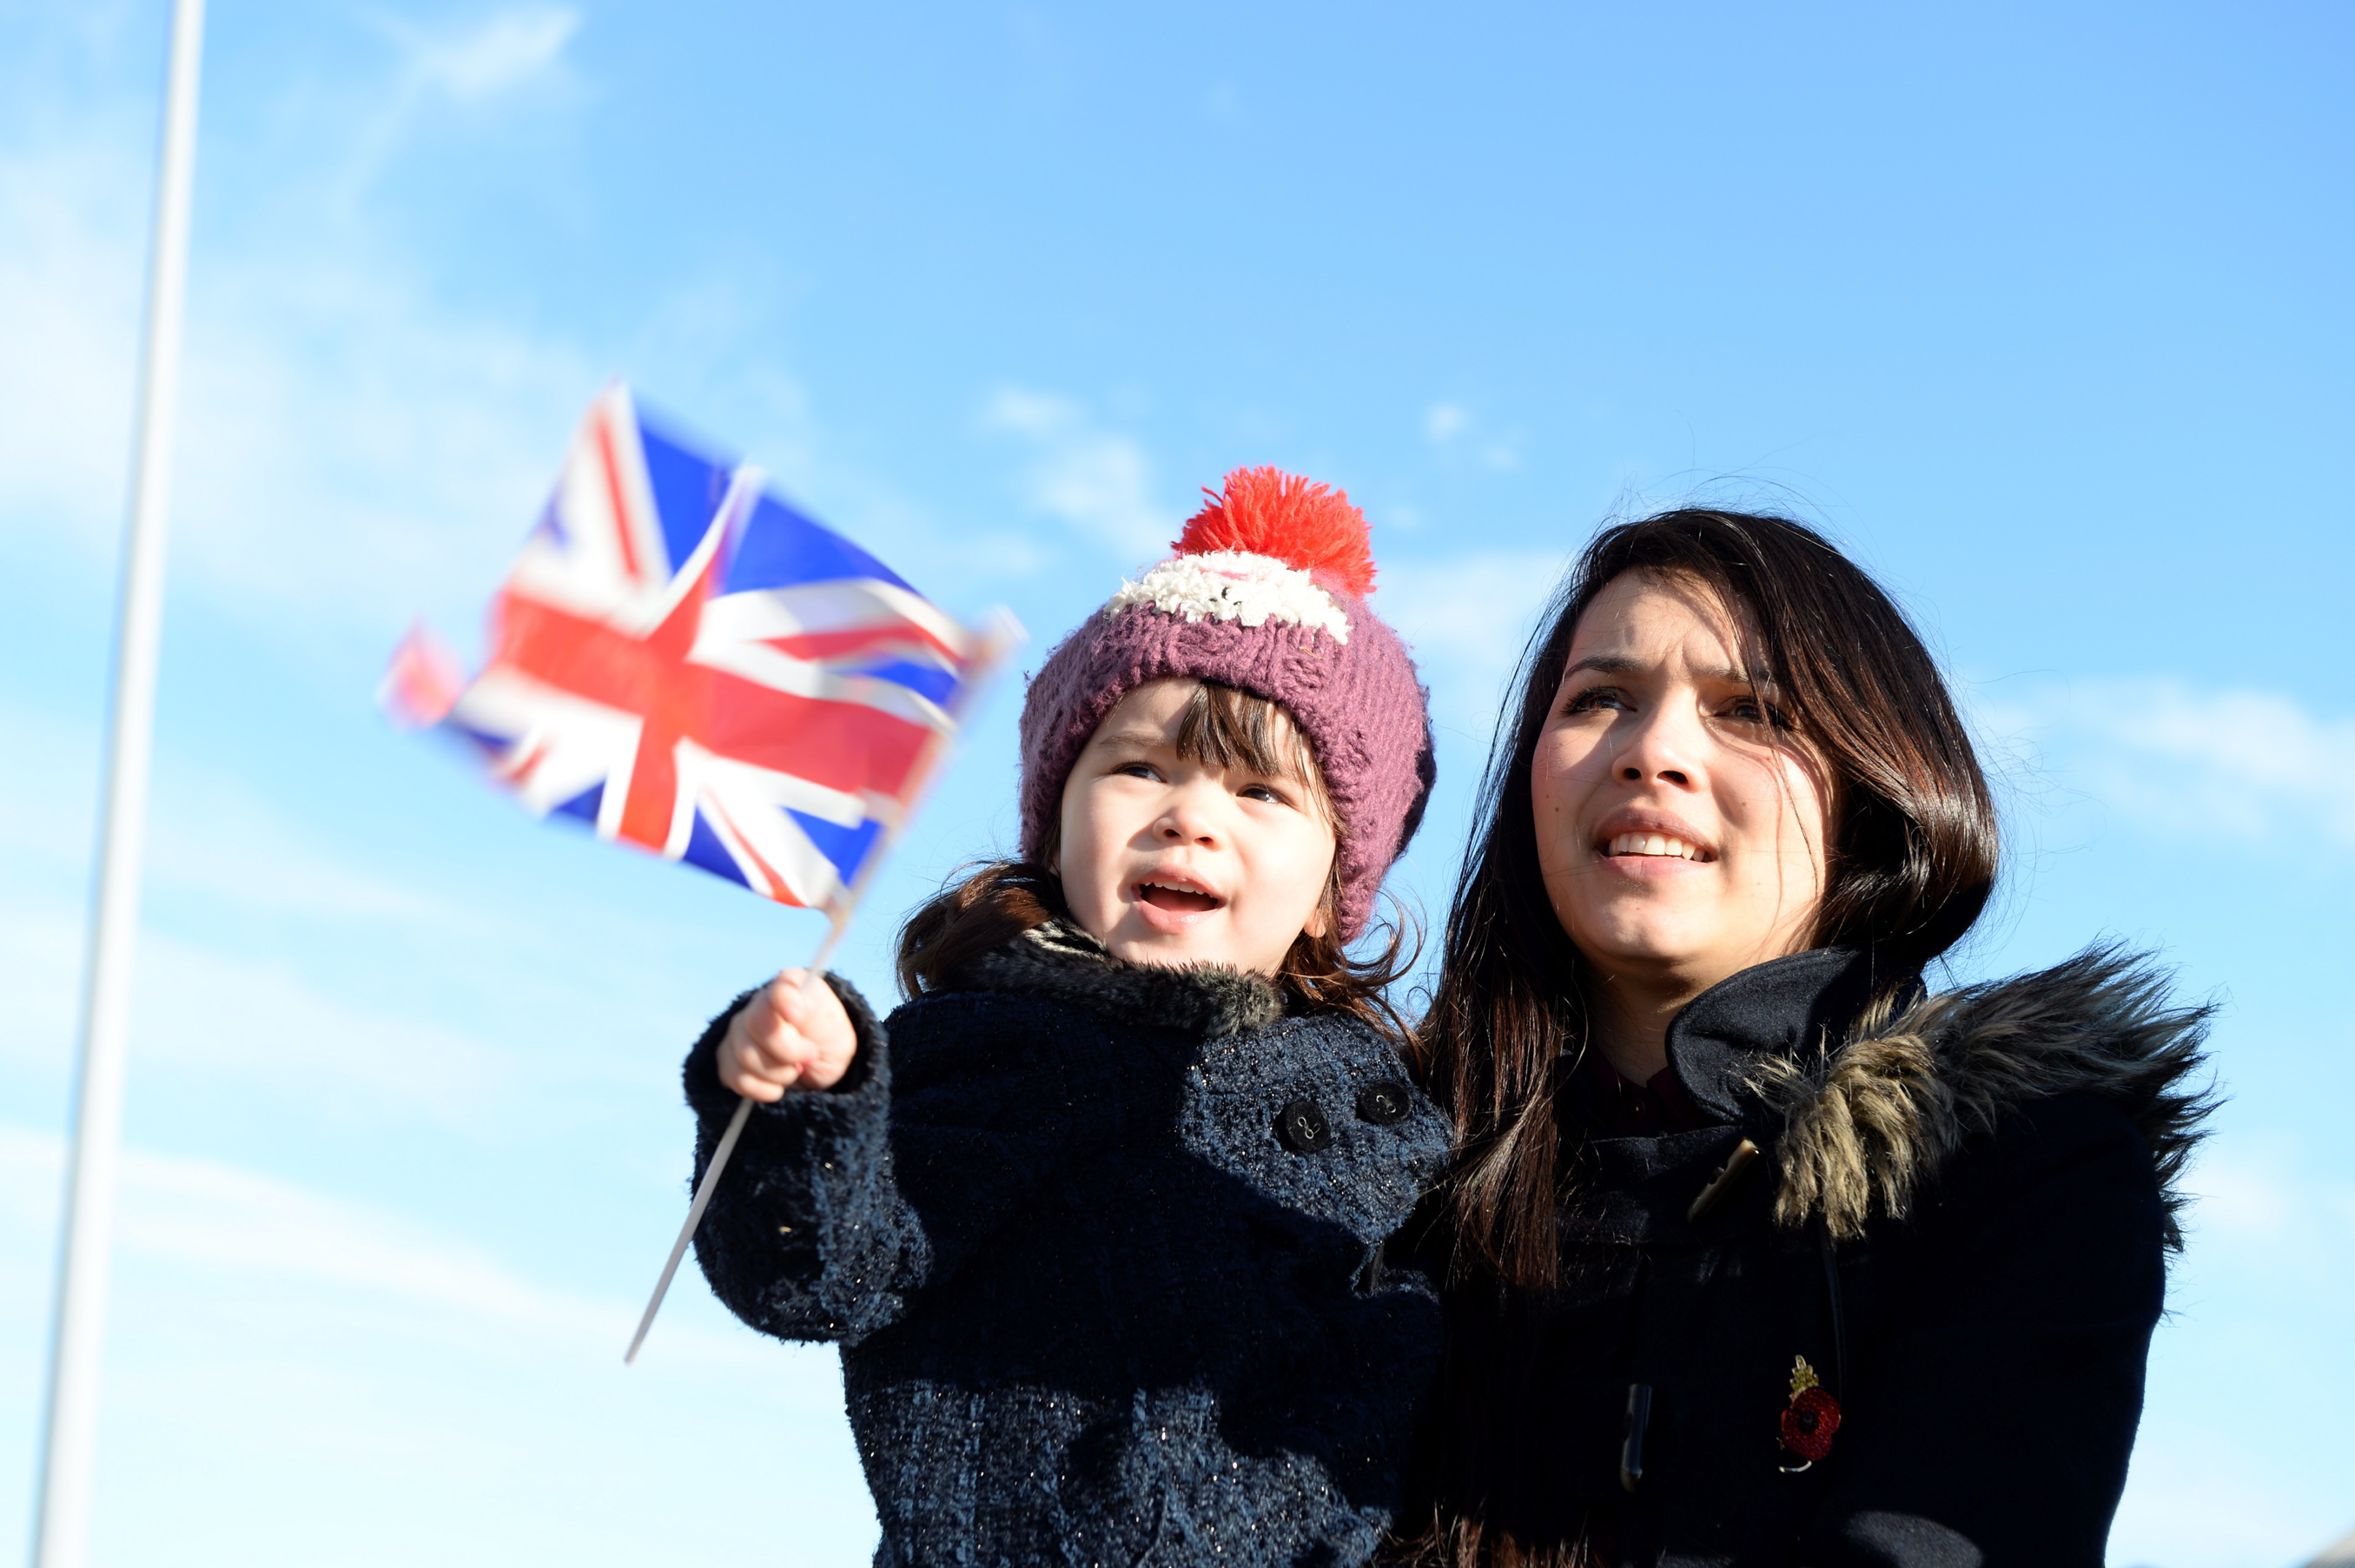 Summer Sabin (Left) spots her father on HMS Defender with her mum Sarah Sabin as HMS Defender returns home to Portsmouth.  A ROYAL Navy Destroyer was deployed to Scottish waters at short notice prior to Christmas in order to intercept and escort a number of Russian warships during their passage past the coast of the UK.  HMS Defender, one of the UK's newest and most powerful T45 Destroyers, began her 700 mile journey from Portsmouth to the North East of Scotland on 19th December in her role as Fleet Ready Escort. Trained and prepared as the Royal Navy's high readiness warship, Defender was standing by over the Christmas and New Year period to respond to a wide range of short notice tasking, from search and rescue duties to maritime security patrols such as this.  Defender patrolled home waters in high sea states and storm force winds to welcome the Russian task group which comprised of 6 vessels, including a 65,000 tonne aircraft carrier.  Due to bad weather the Russian fleet anchored in the Moray Firth before heading down the East coast of the UK. As a sign of the friendship between the 2 navies, good will messages were exchanged between the Royal Navy and Russian ships on New Year's Eve. Consent held.